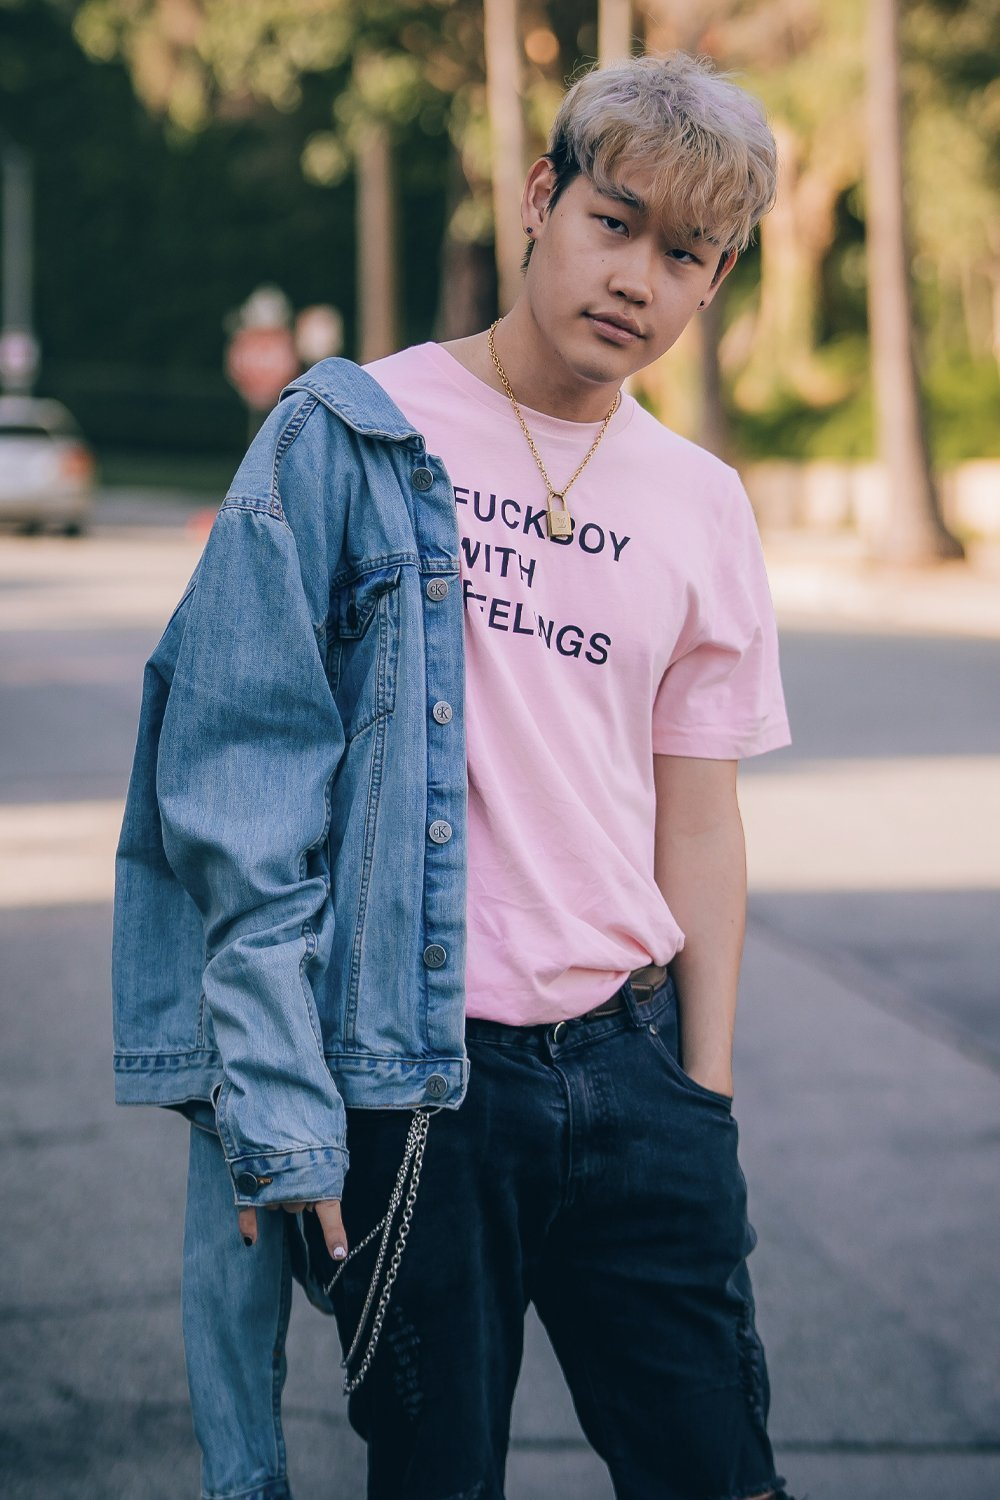 F Boy With Feelings Shirt